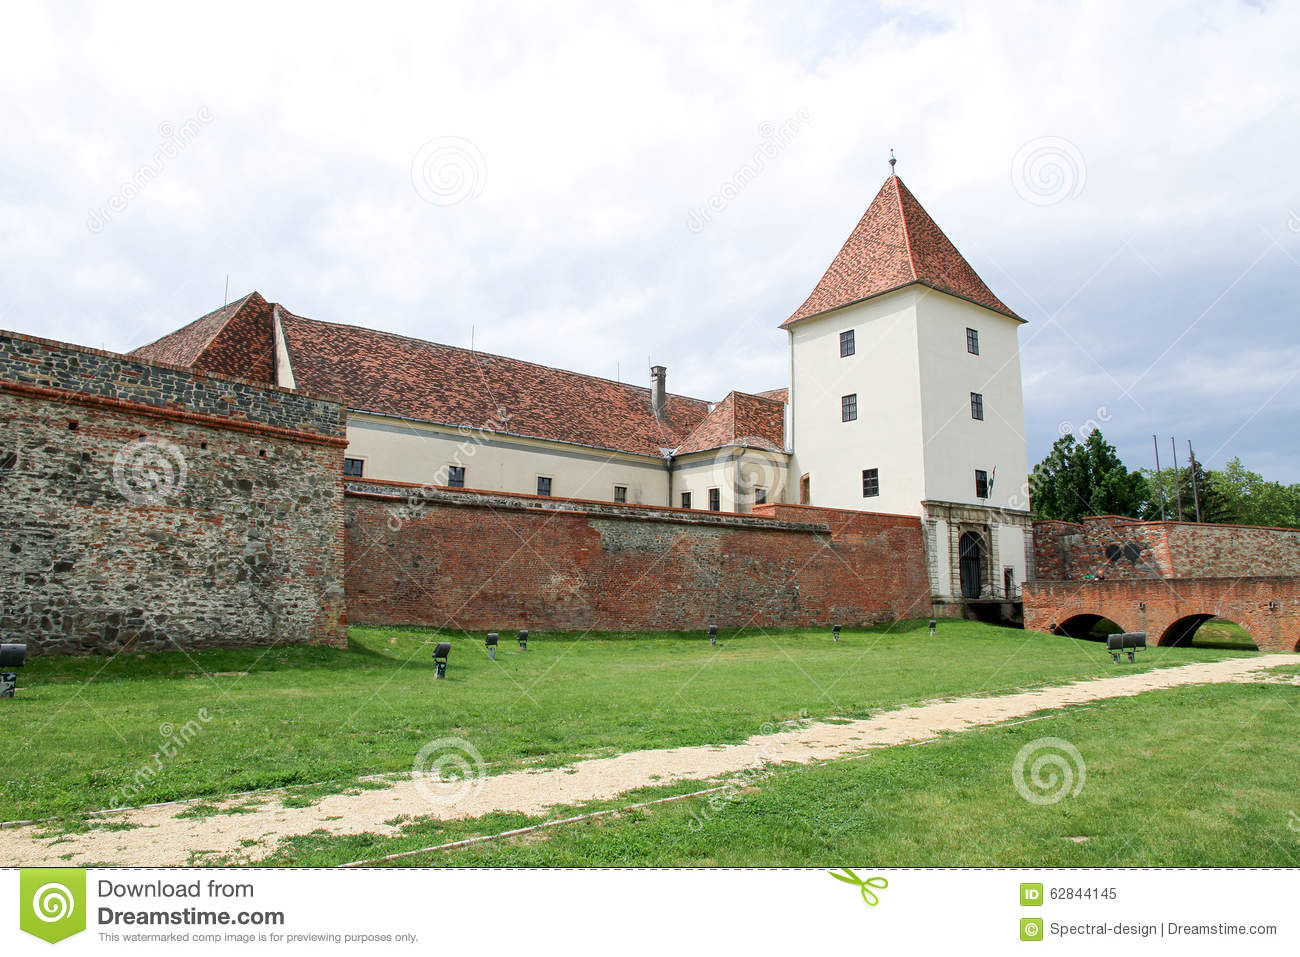 Sarvar Hungary  City pictures : Medieval castle in Sarvar, Hungary, Europe.